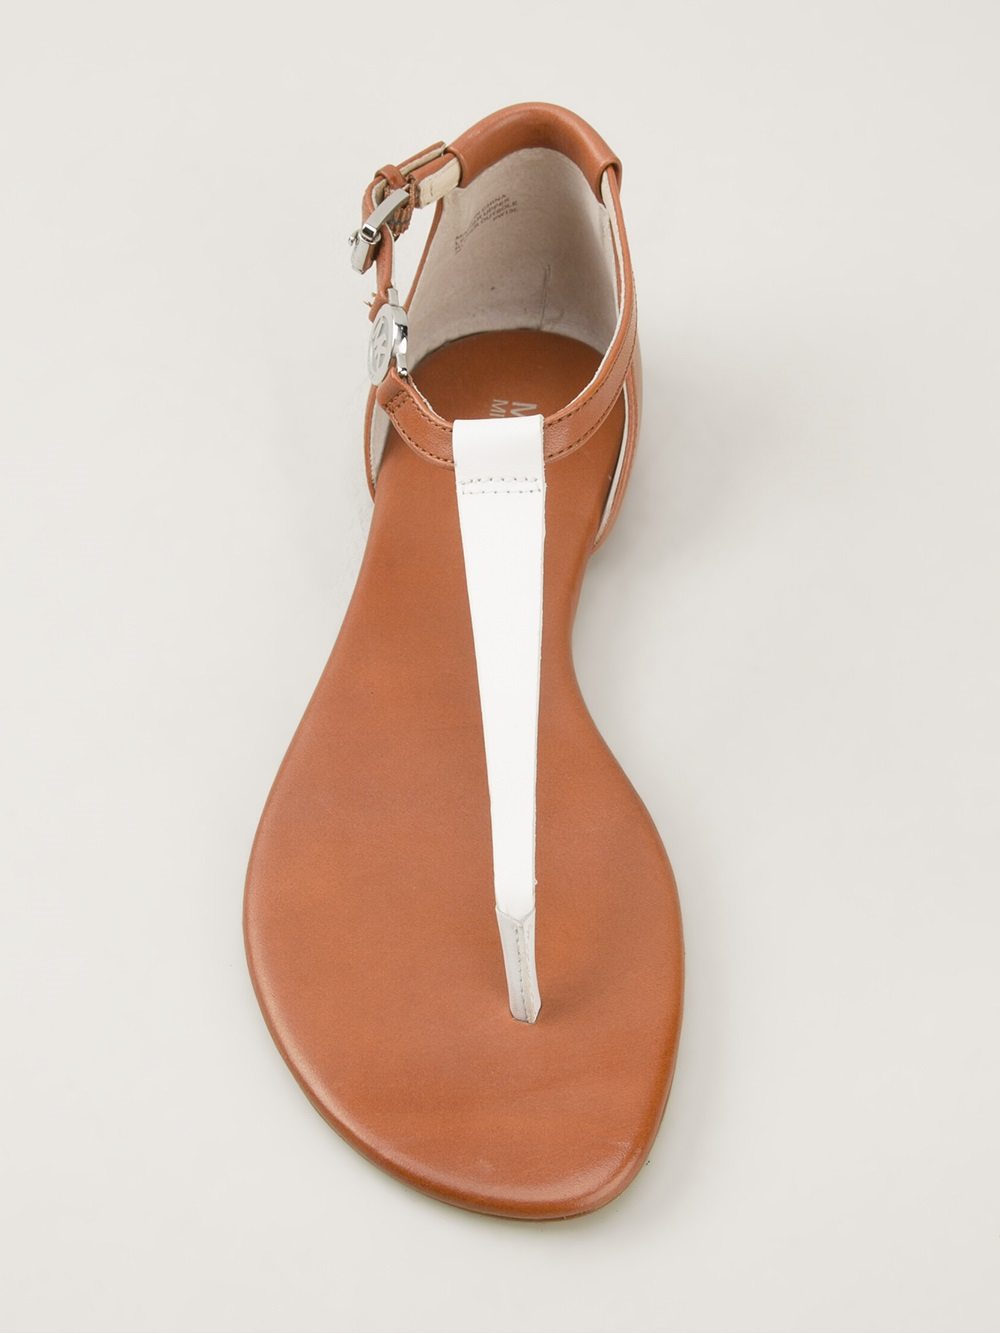 a2b6d986a5e0 Lyst - MICHAEL Michael Kors Bridget Thong Sandals in Brown